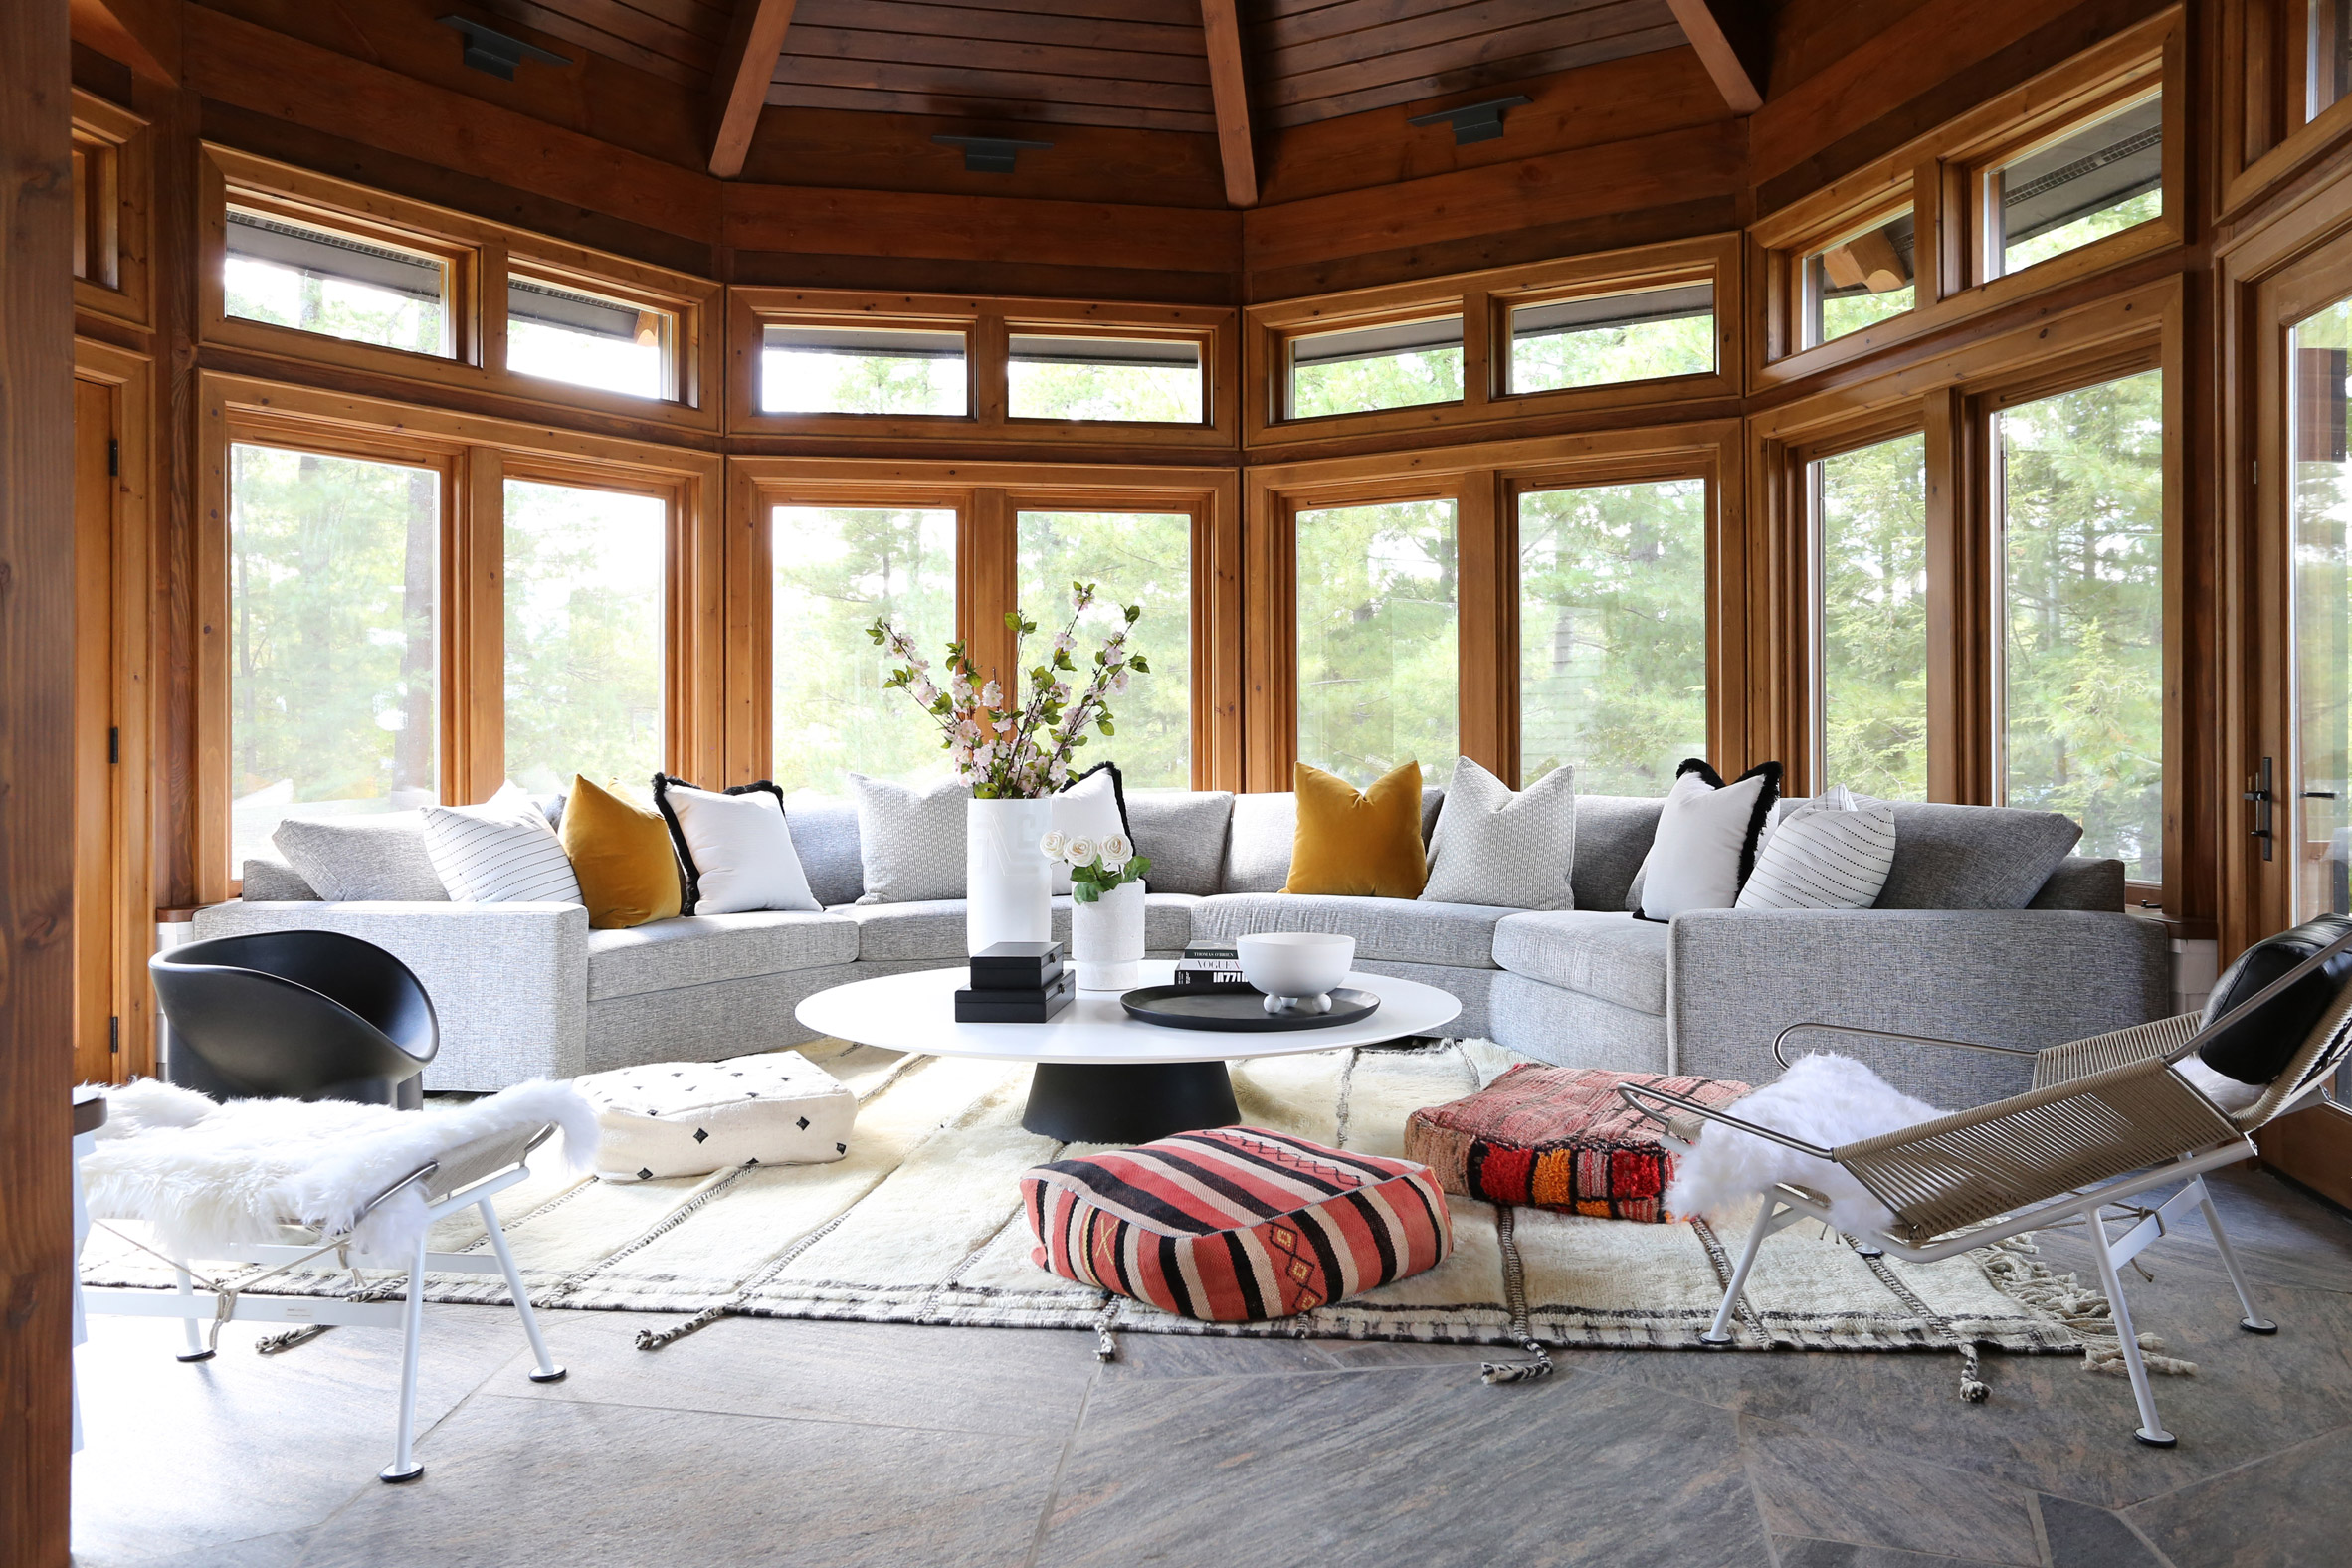 The Muskoka Room is a sunroom